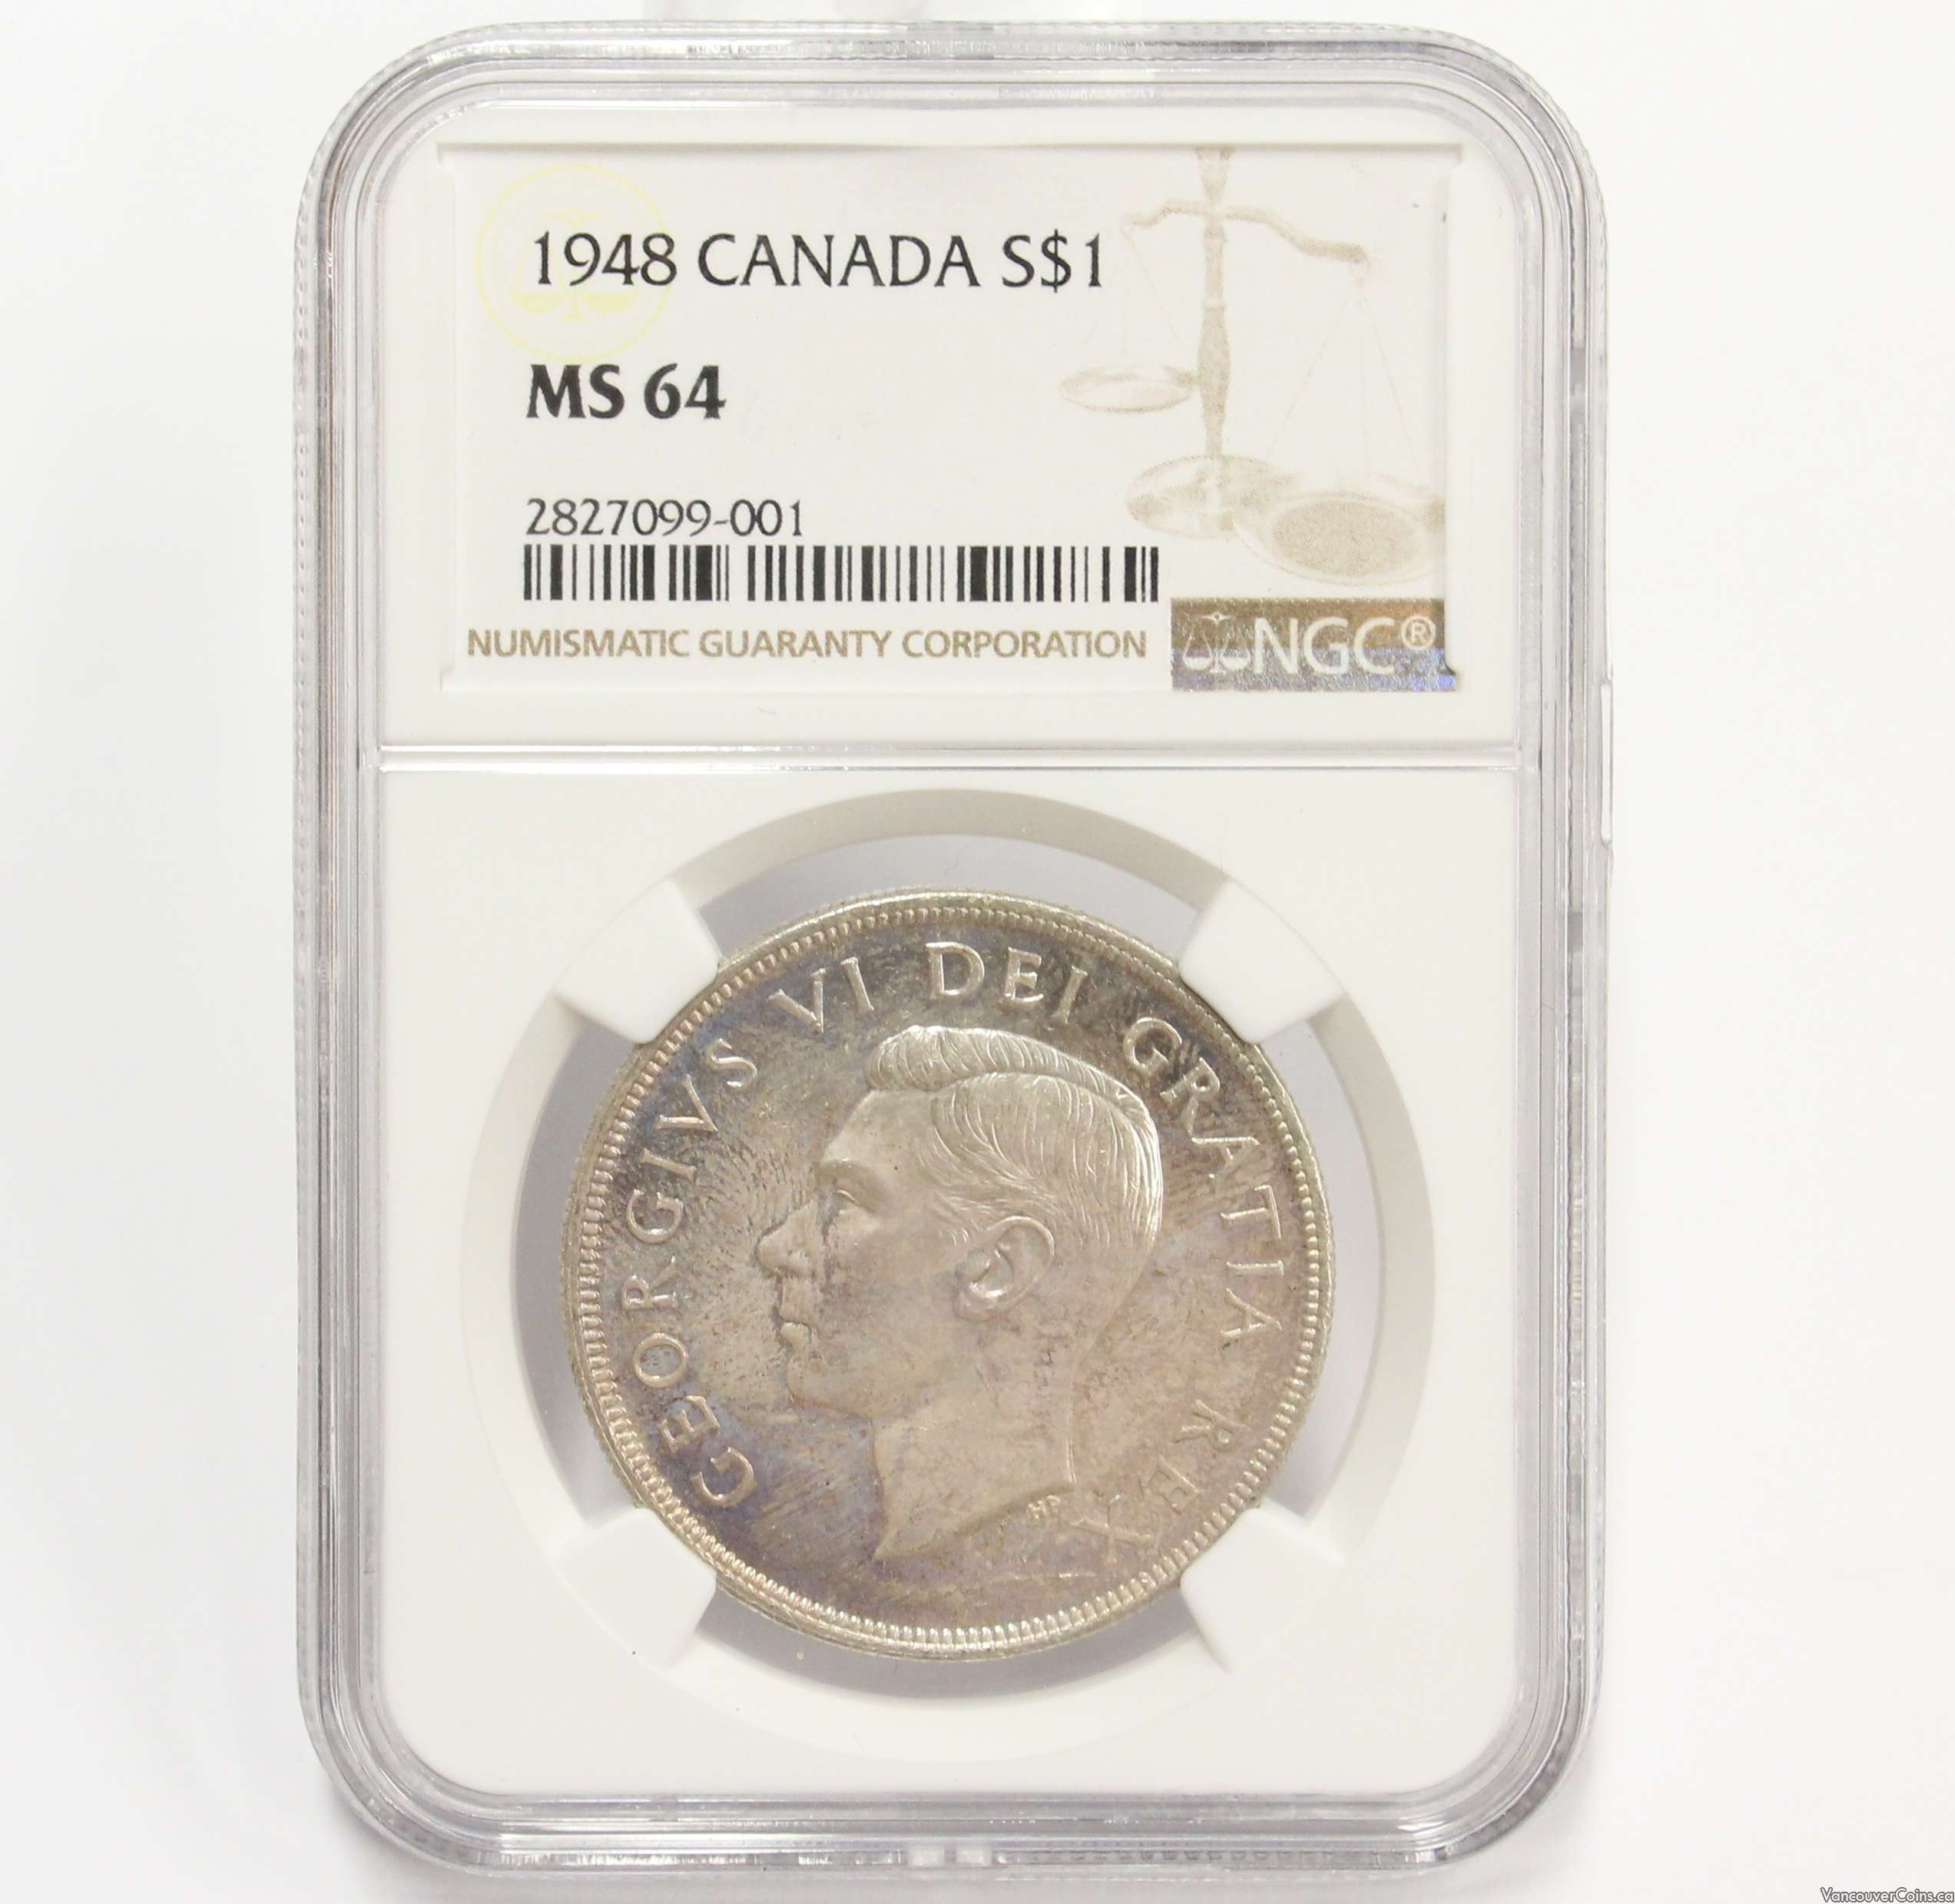 1948 Canada silver dollar NGC MS64